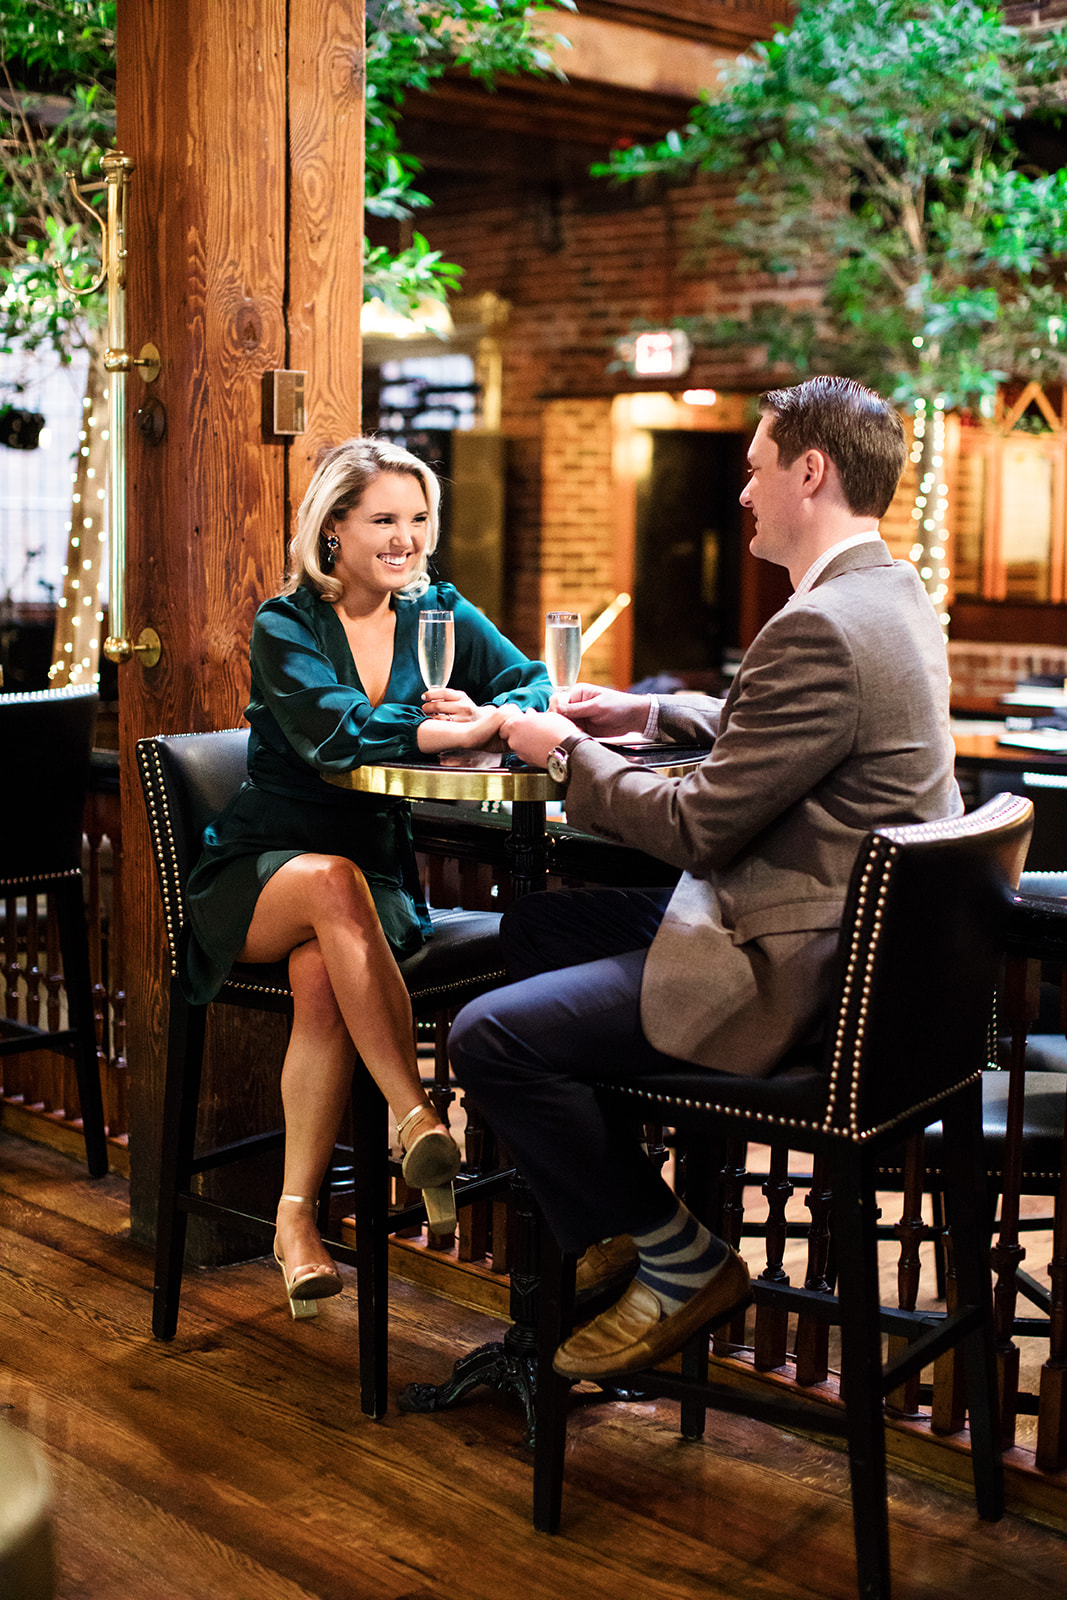 How to Plan a Date Night Engagement Photo Shoot - Image Property of www.j-dphoto.com